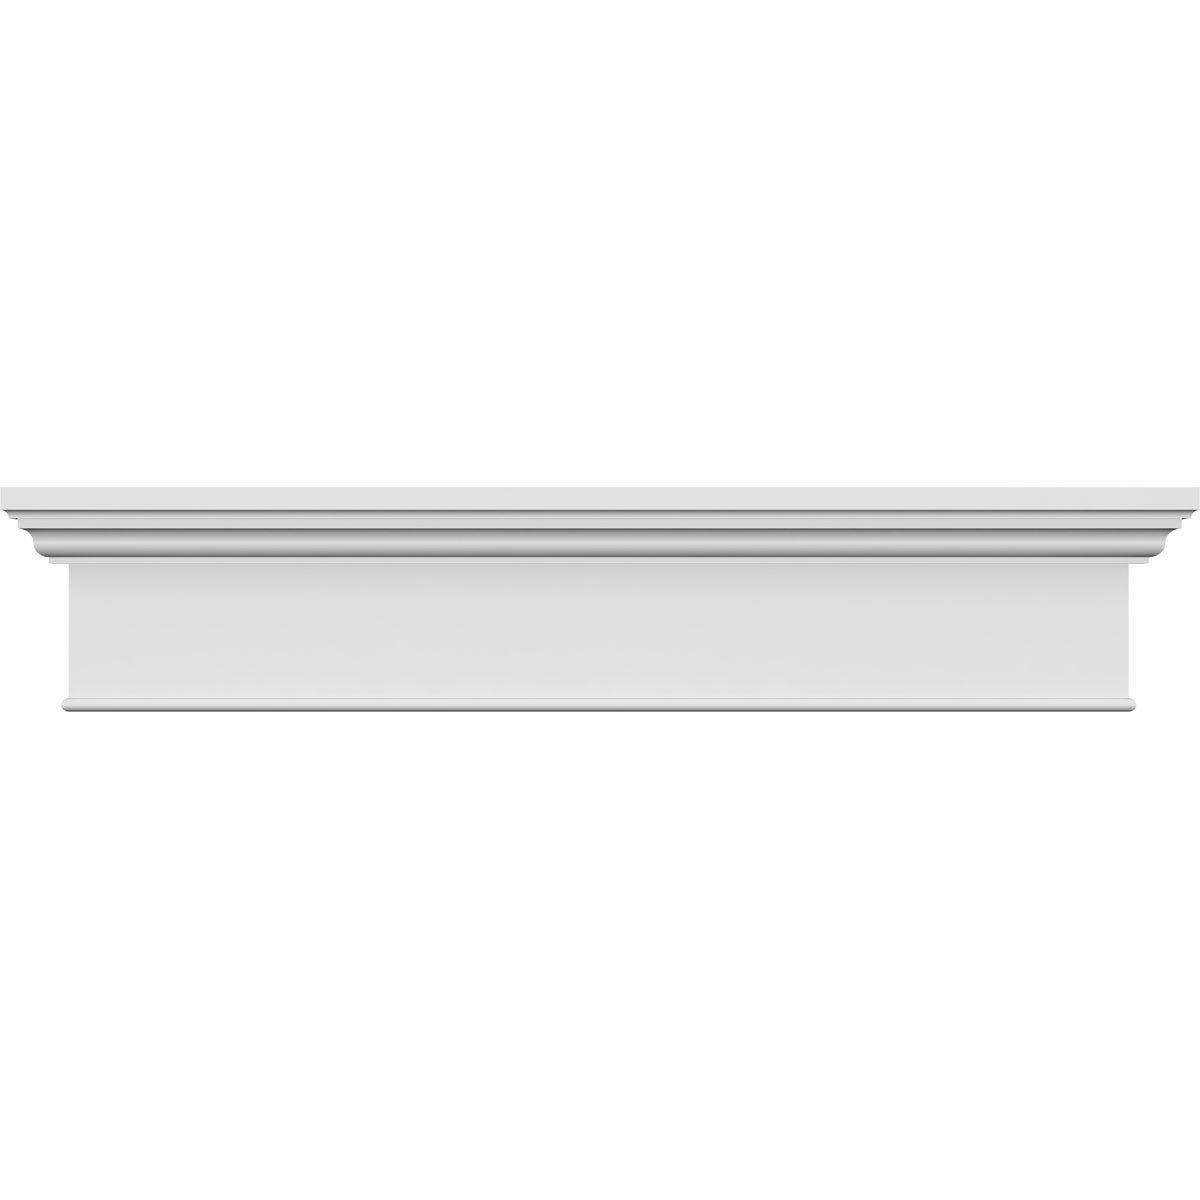 Ekena Millwork CRH07X38BT Craftsman Crosshead with Bottom Trim, 38'' Width x 42'' Top Width, Factory Primed and Ready for Paint by Ekena Millwork